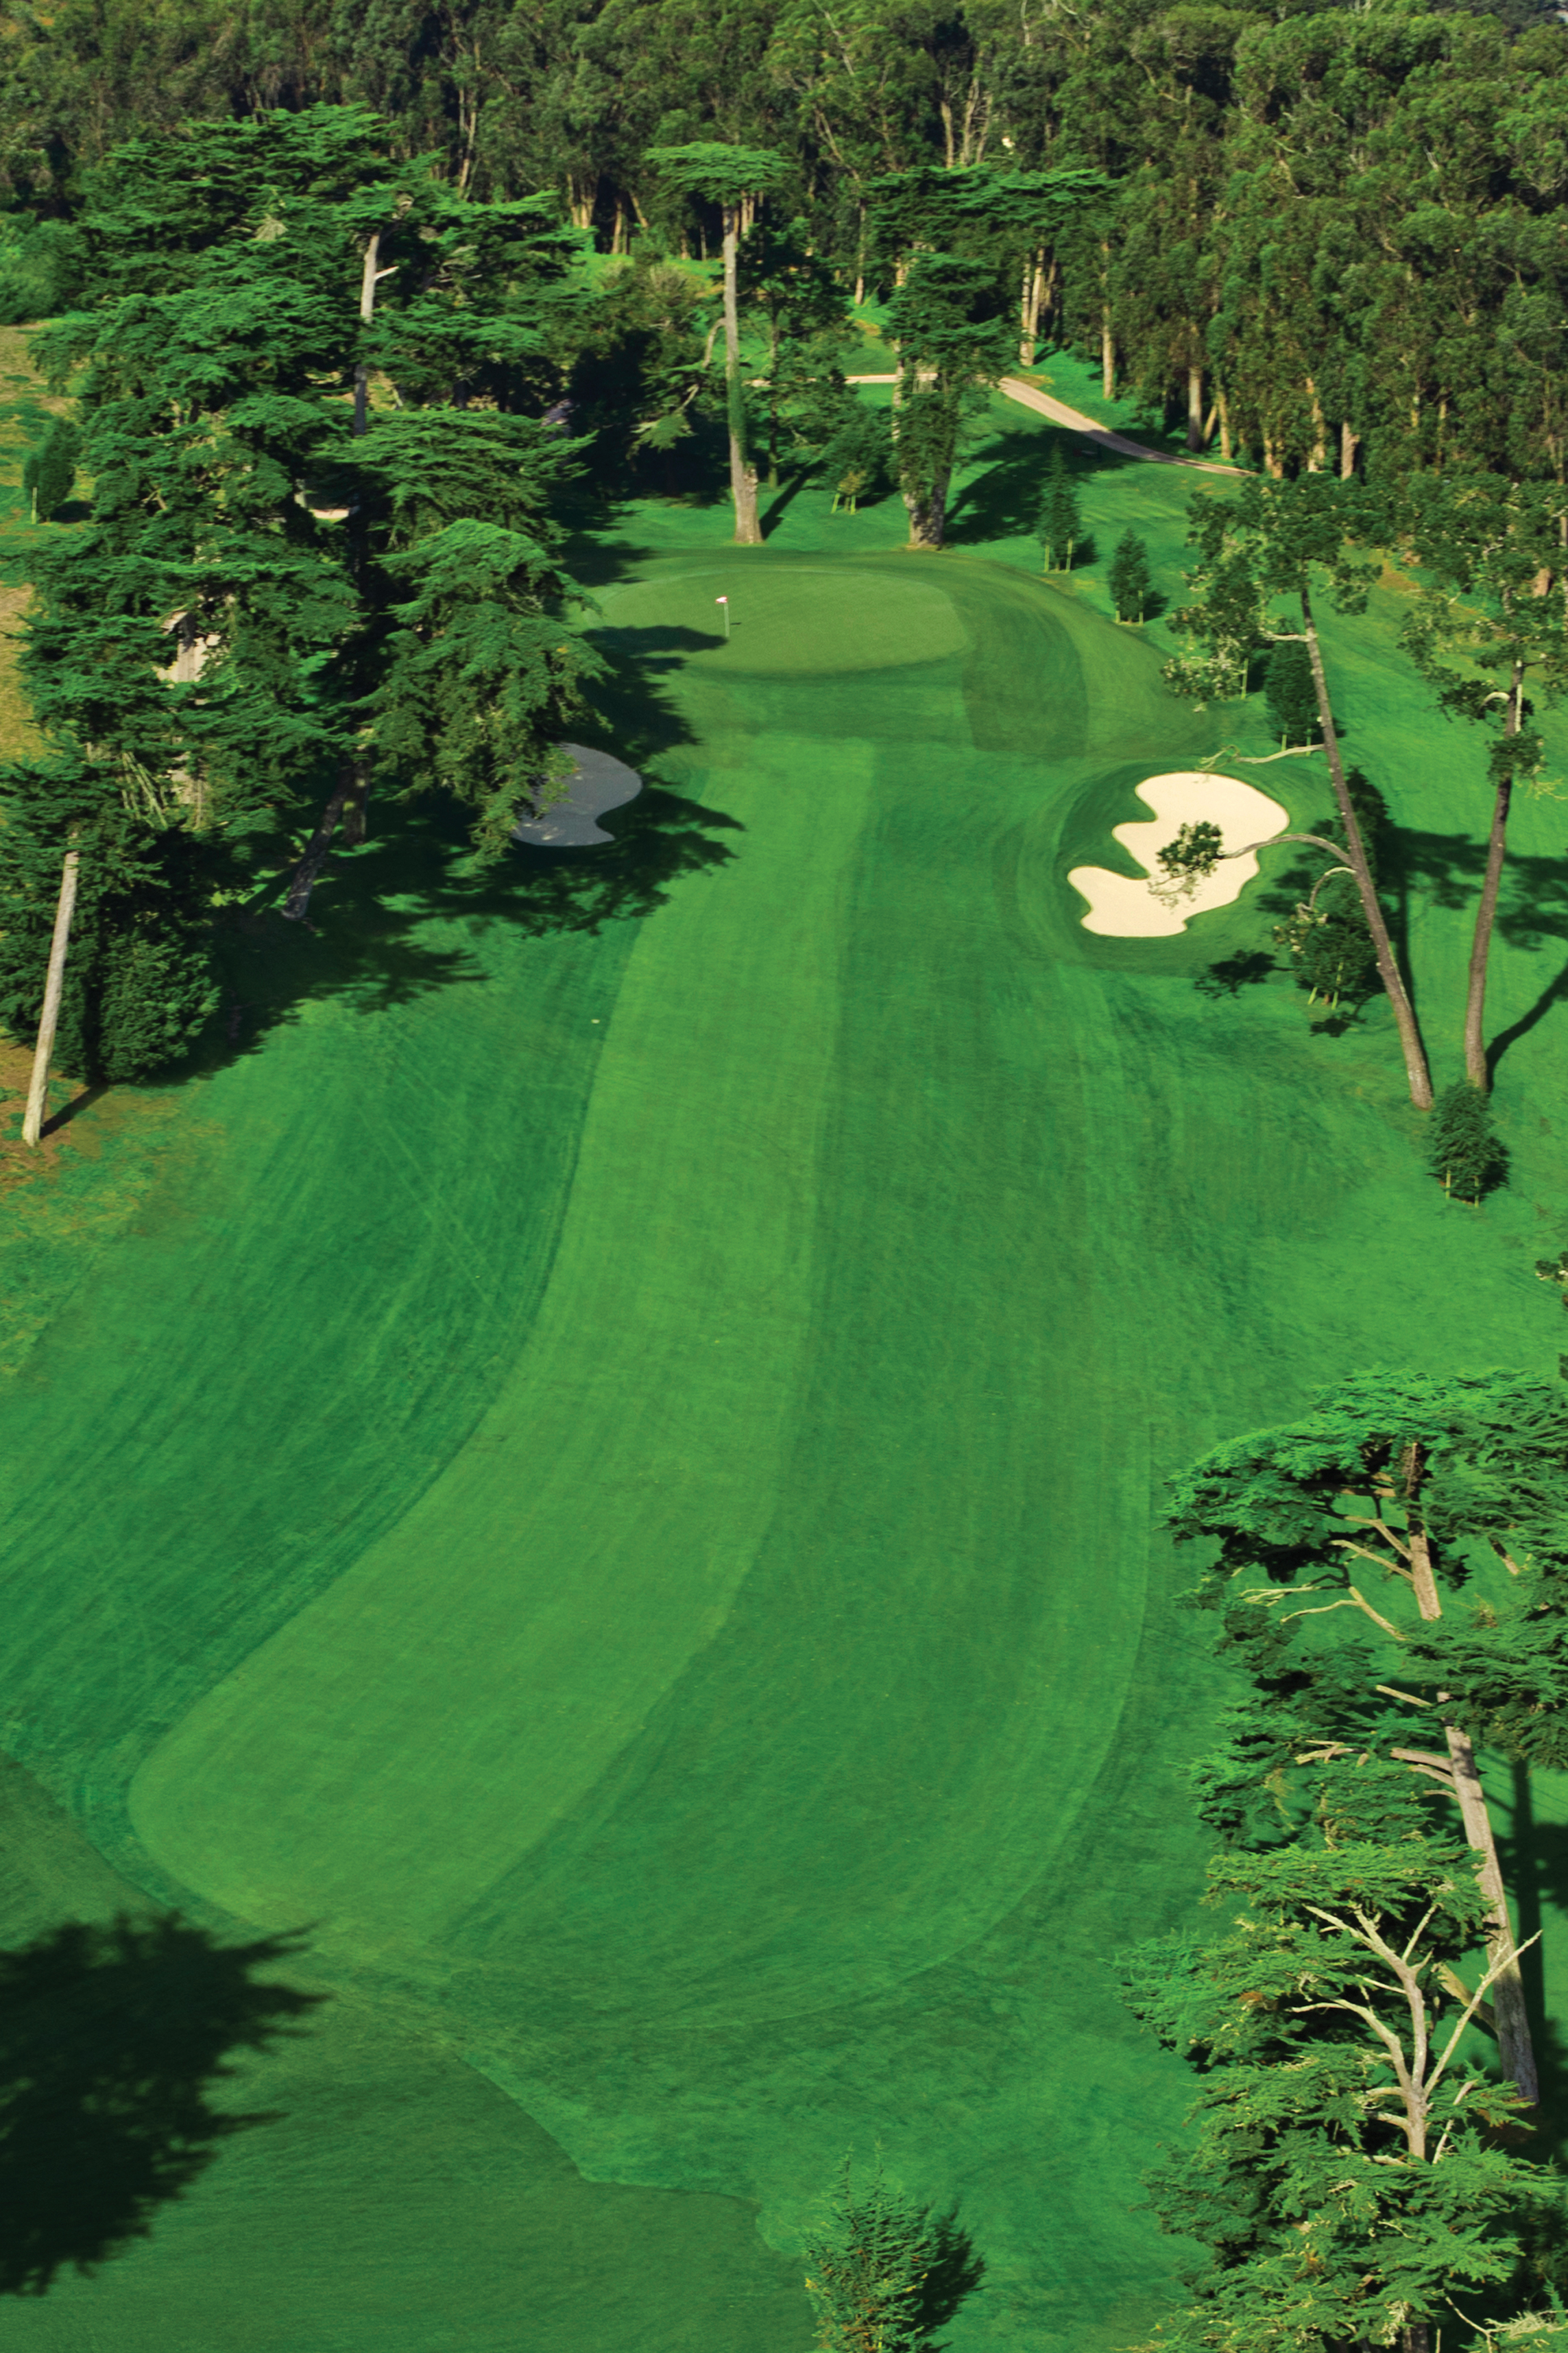 The reverse-camber fairway of No. 4 on Olympic's Lake Course